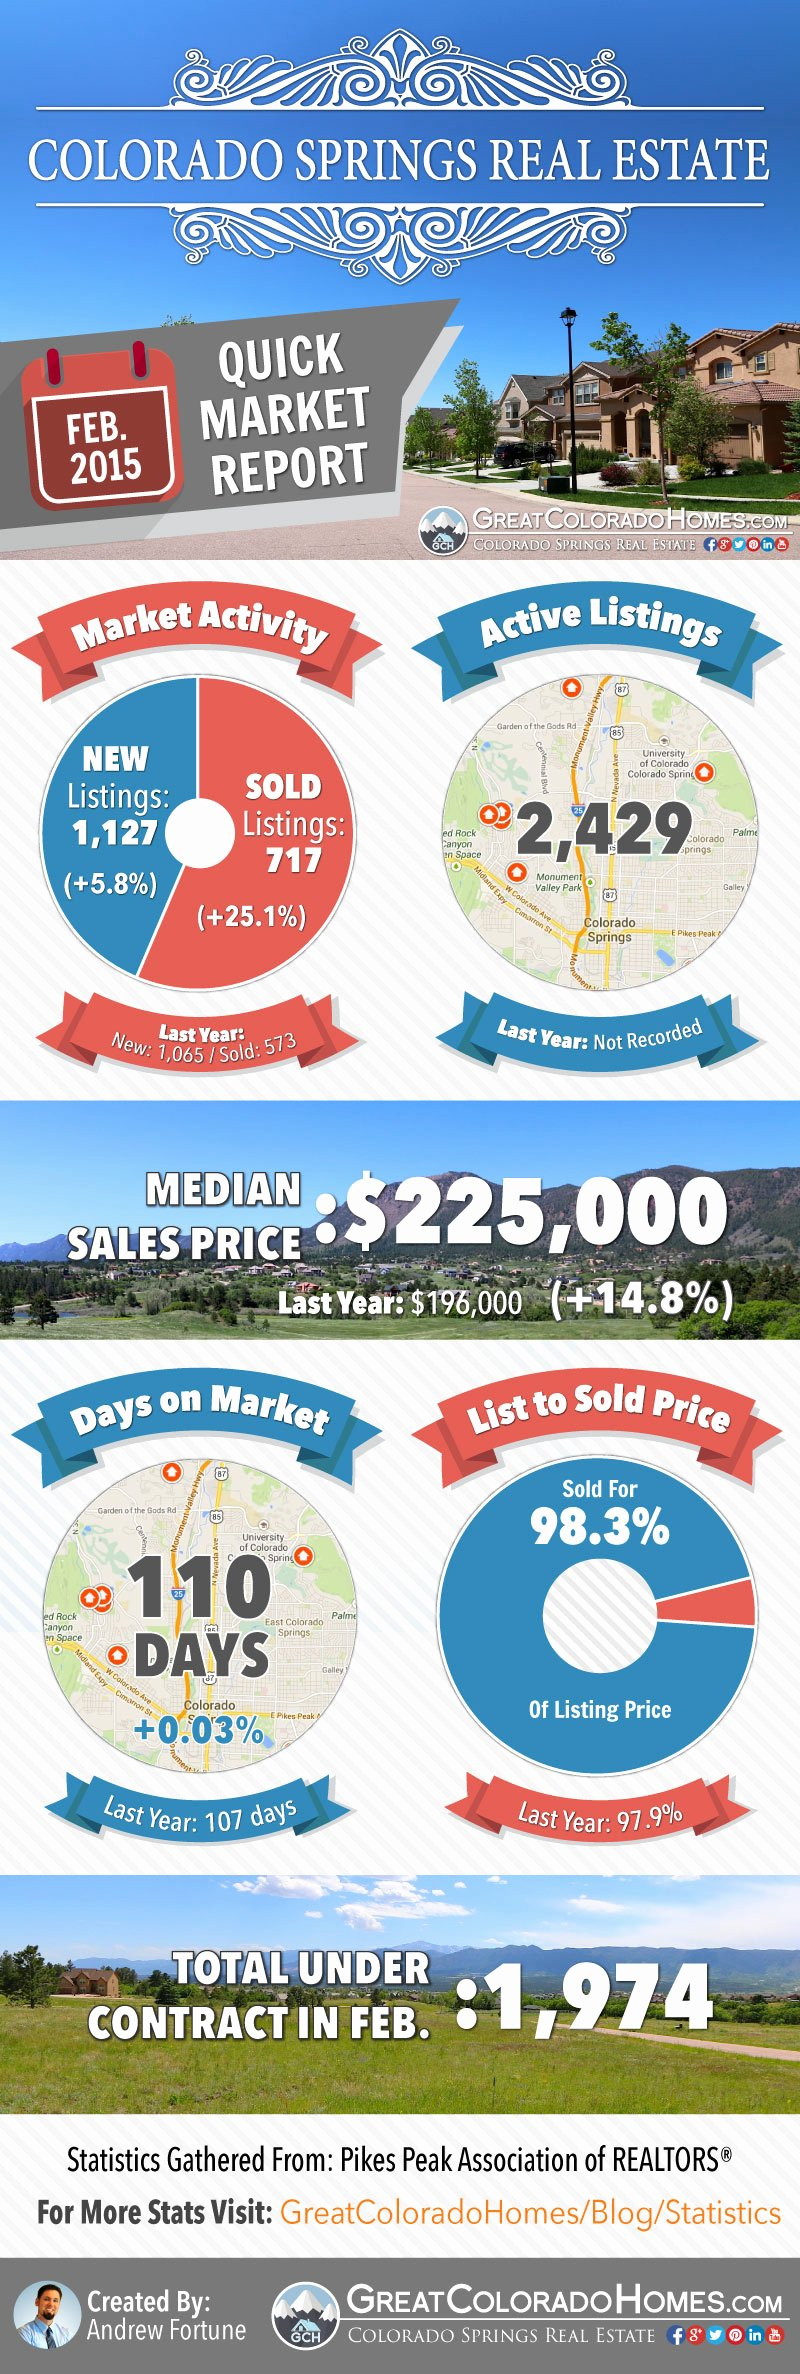 Real Estate Market Report Template Beautiful February 2015 Colorado Springs Real Estate